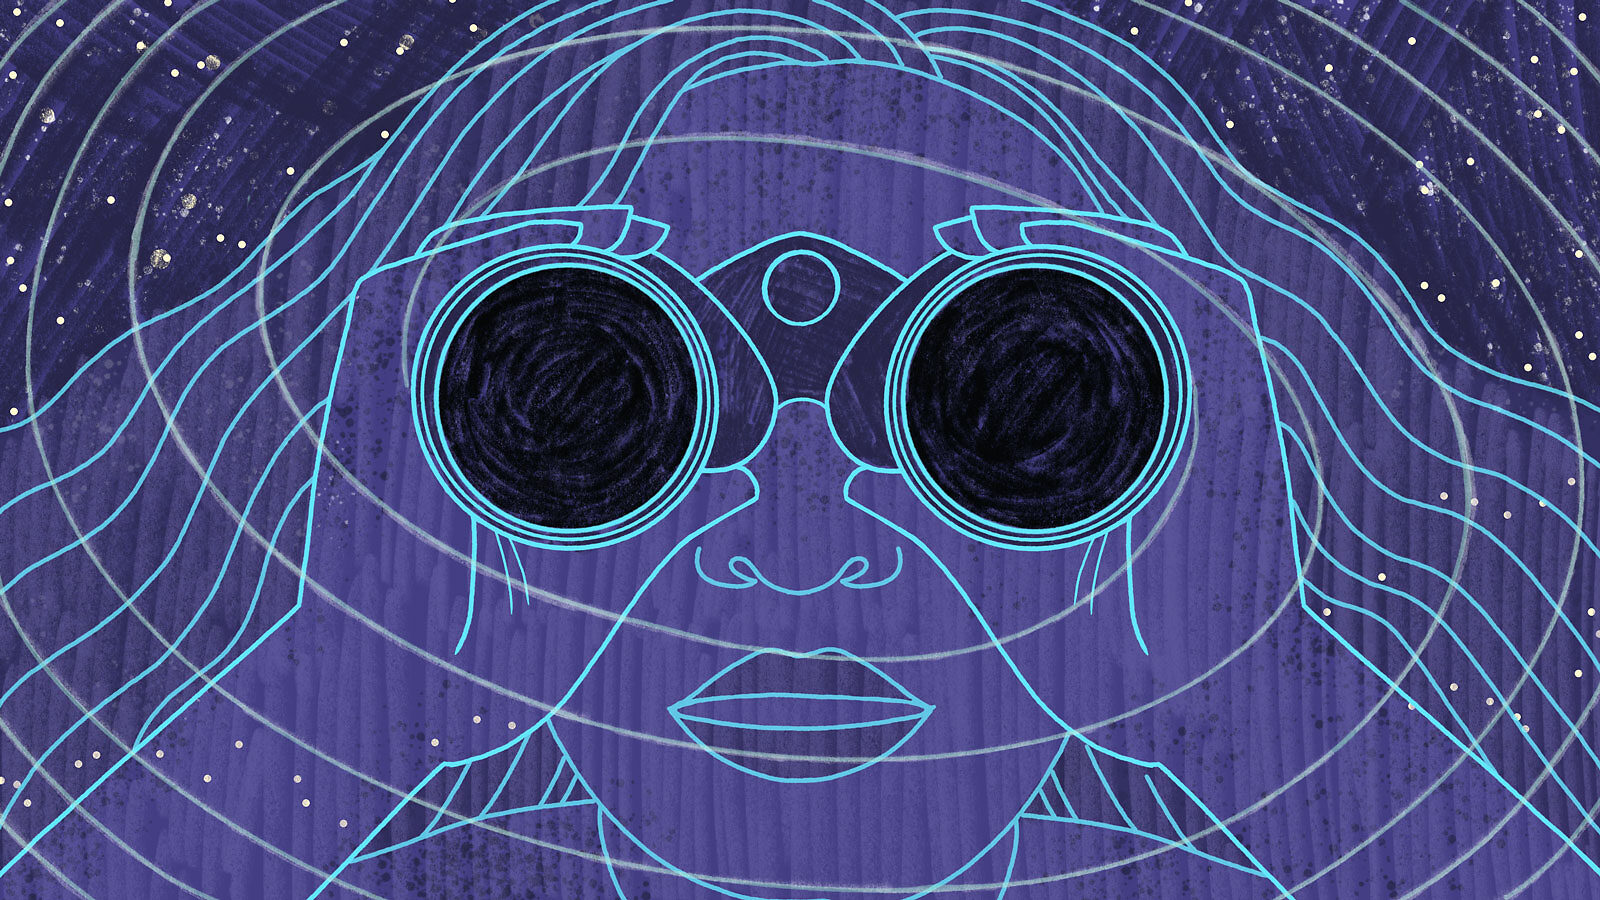 Illustration of a woman looking through binoculars with black holes as lenses